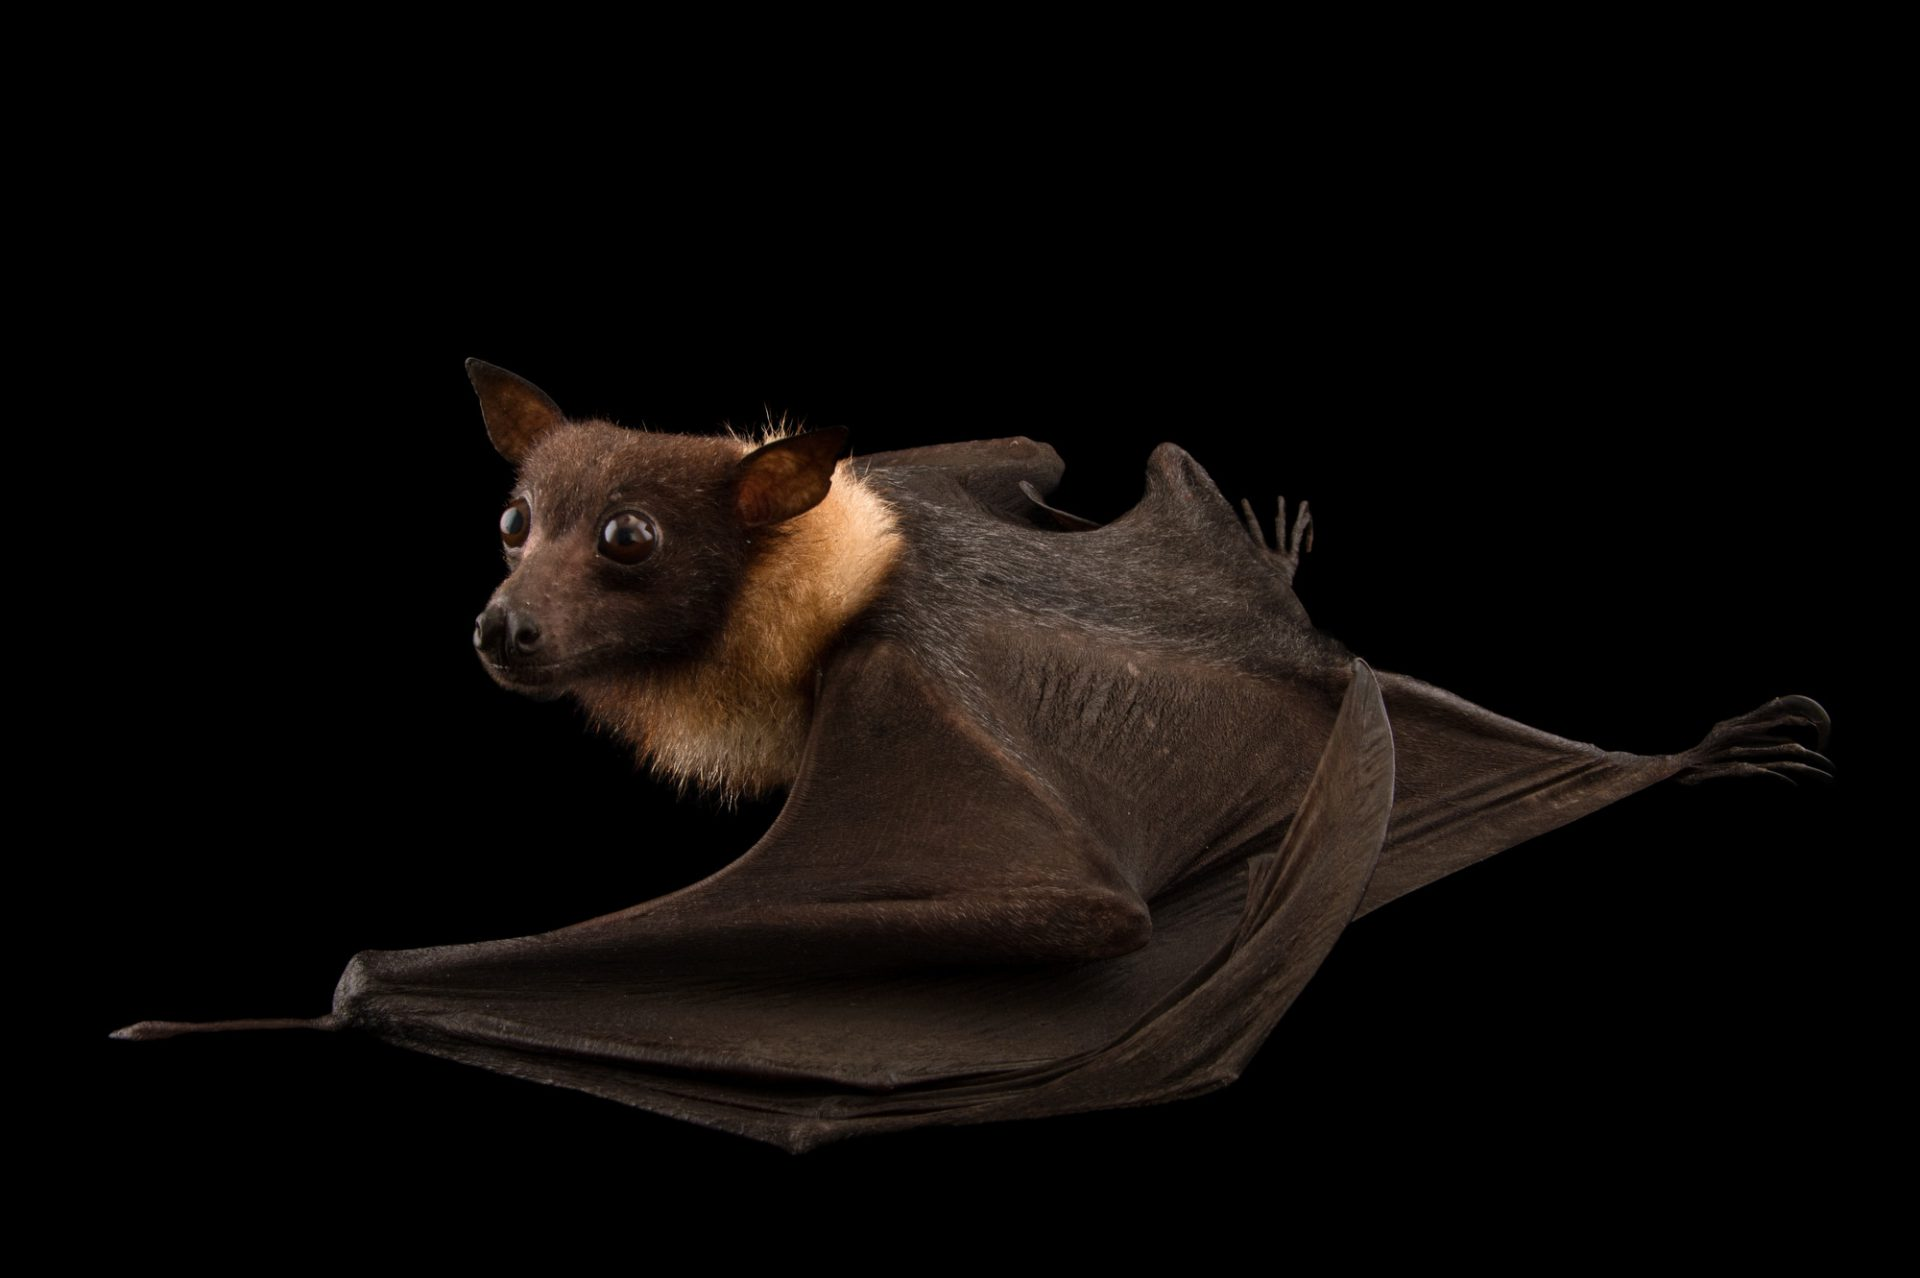 Photo: Lyle's flying fox (Pteropus lylei) at the Budapest Zoo.